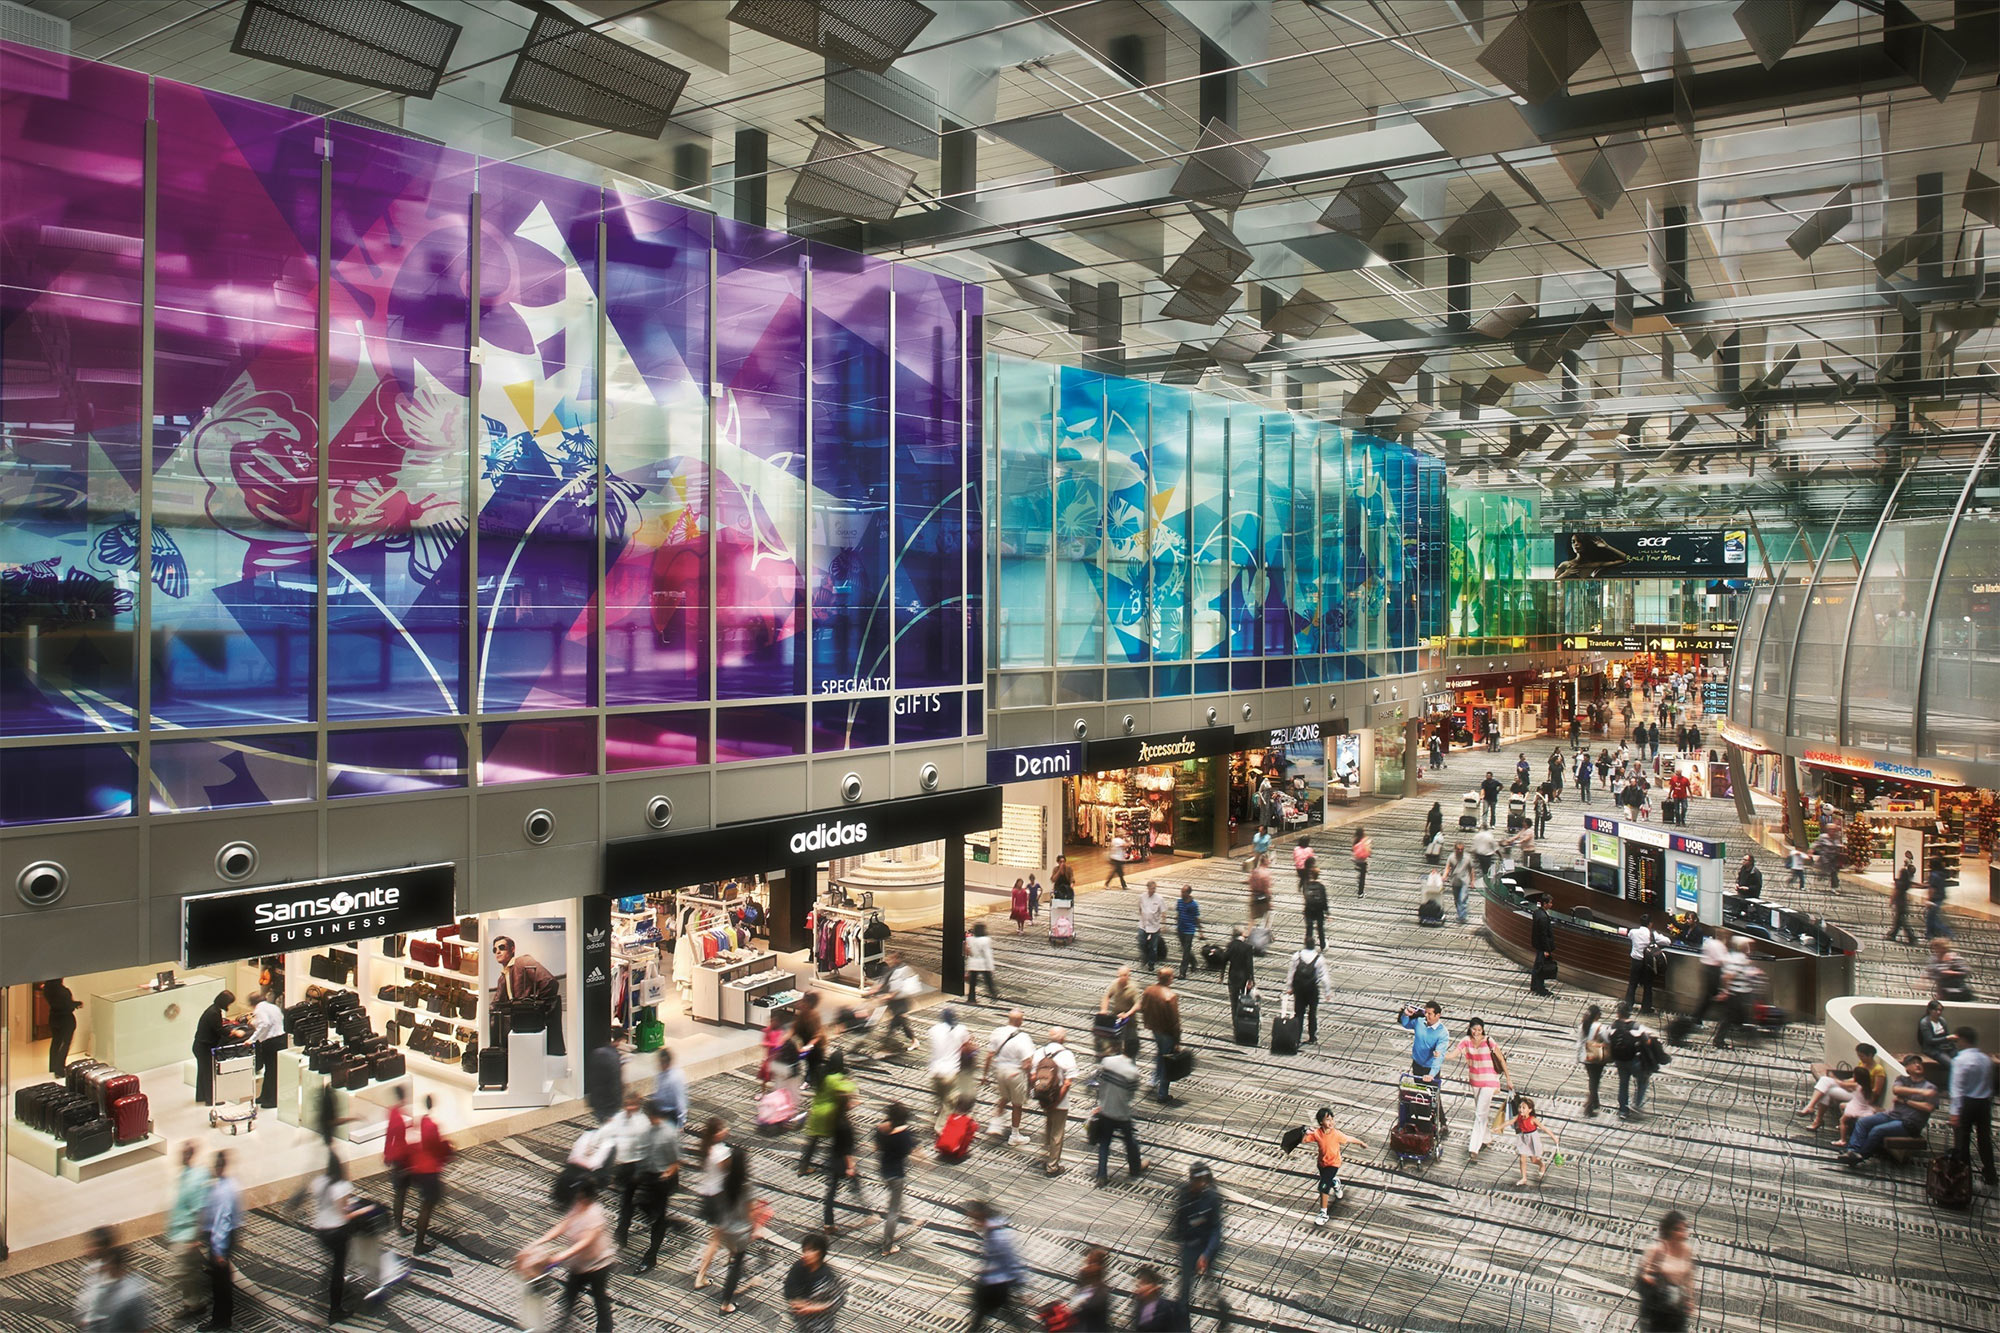 HSBC VI cardholders invited to tour Changi Airport's transit area shops